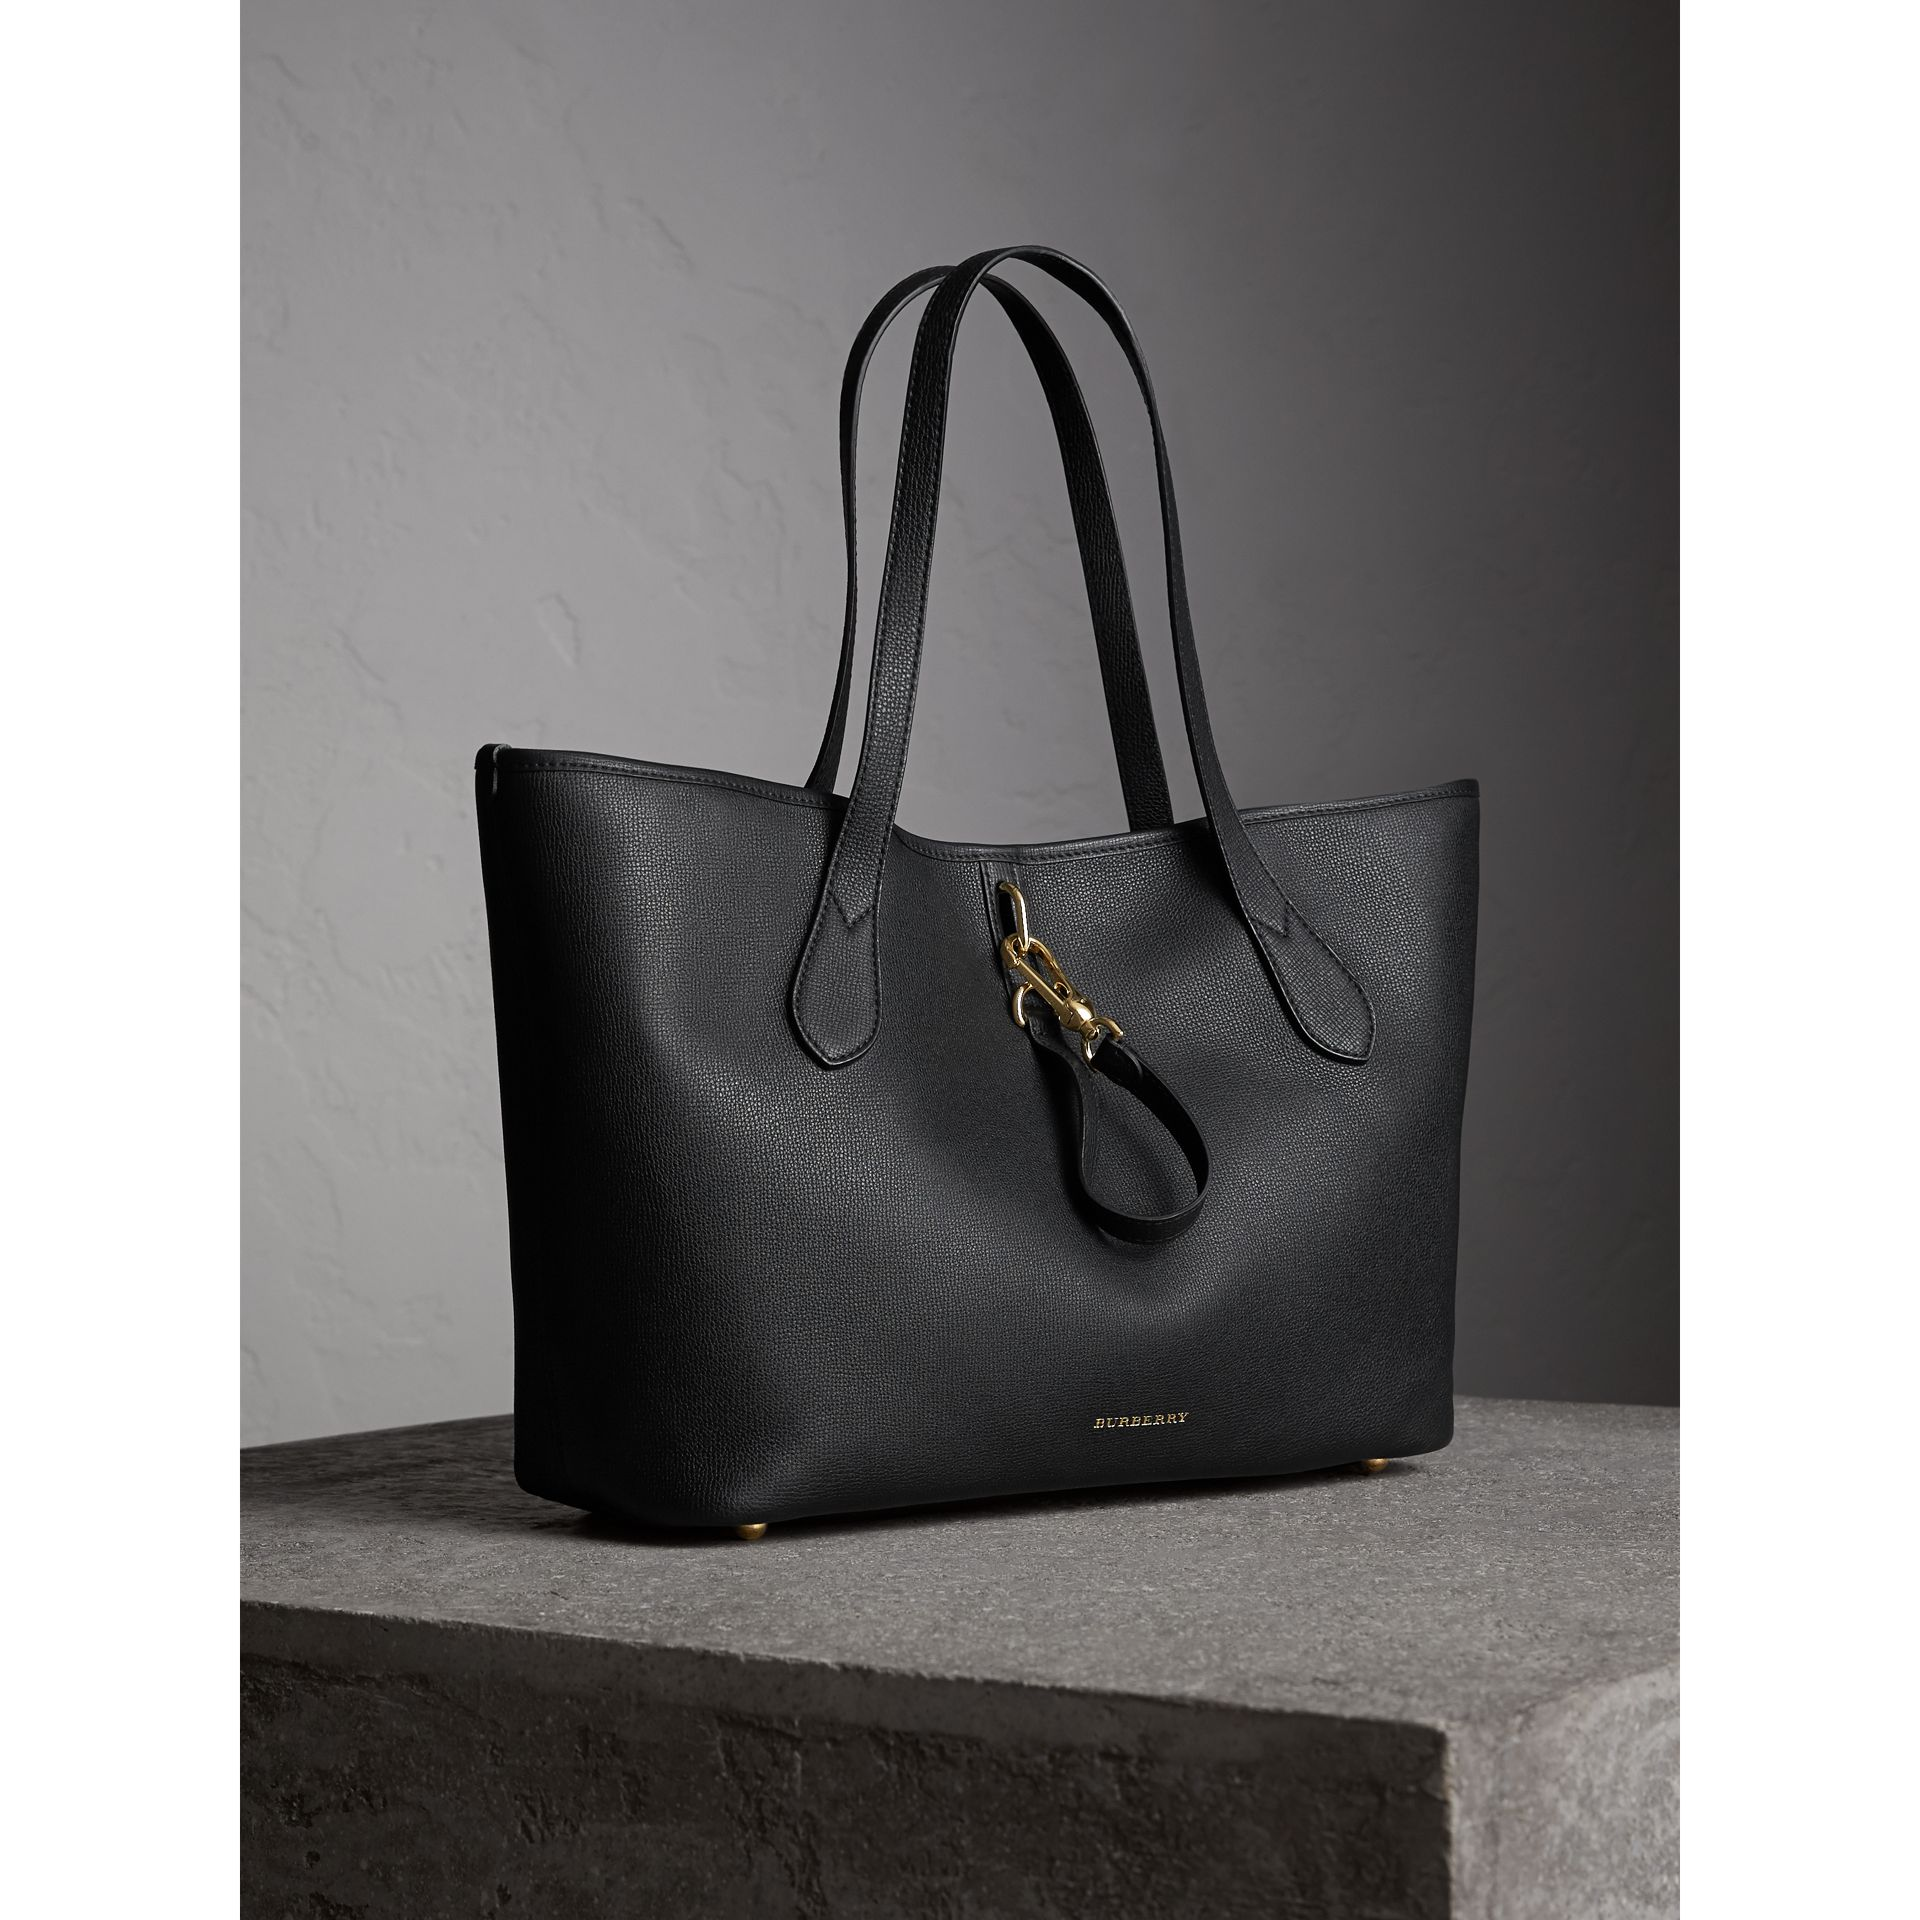 Medium Grainy Leather Tote Bag in Black - Women | Burberry Canada - gallery image 5